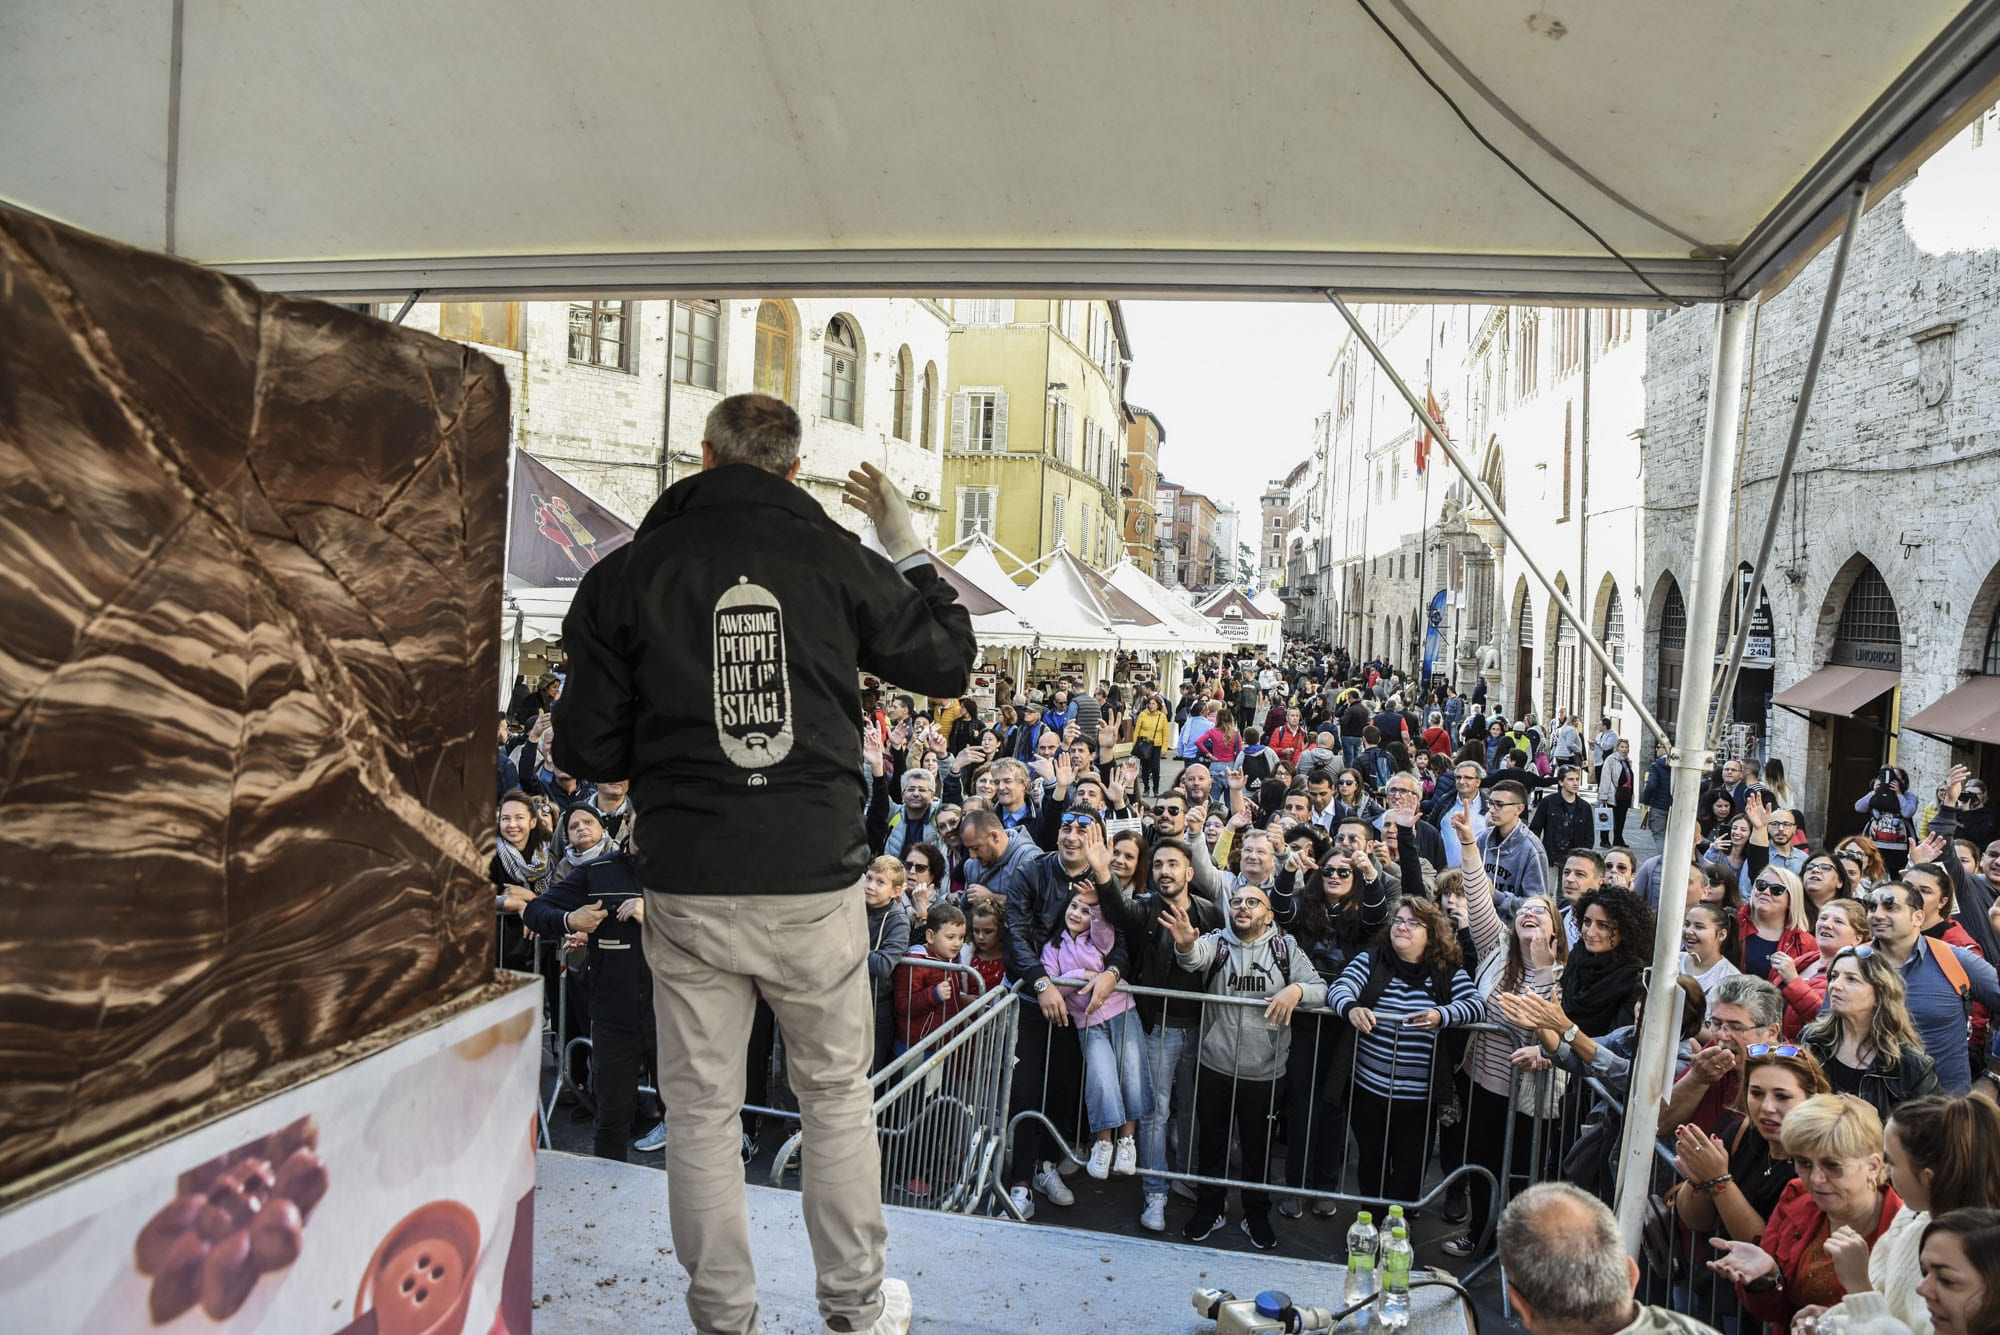 Crowds flocking to the streets of Perugia for Eurochocolate Festival